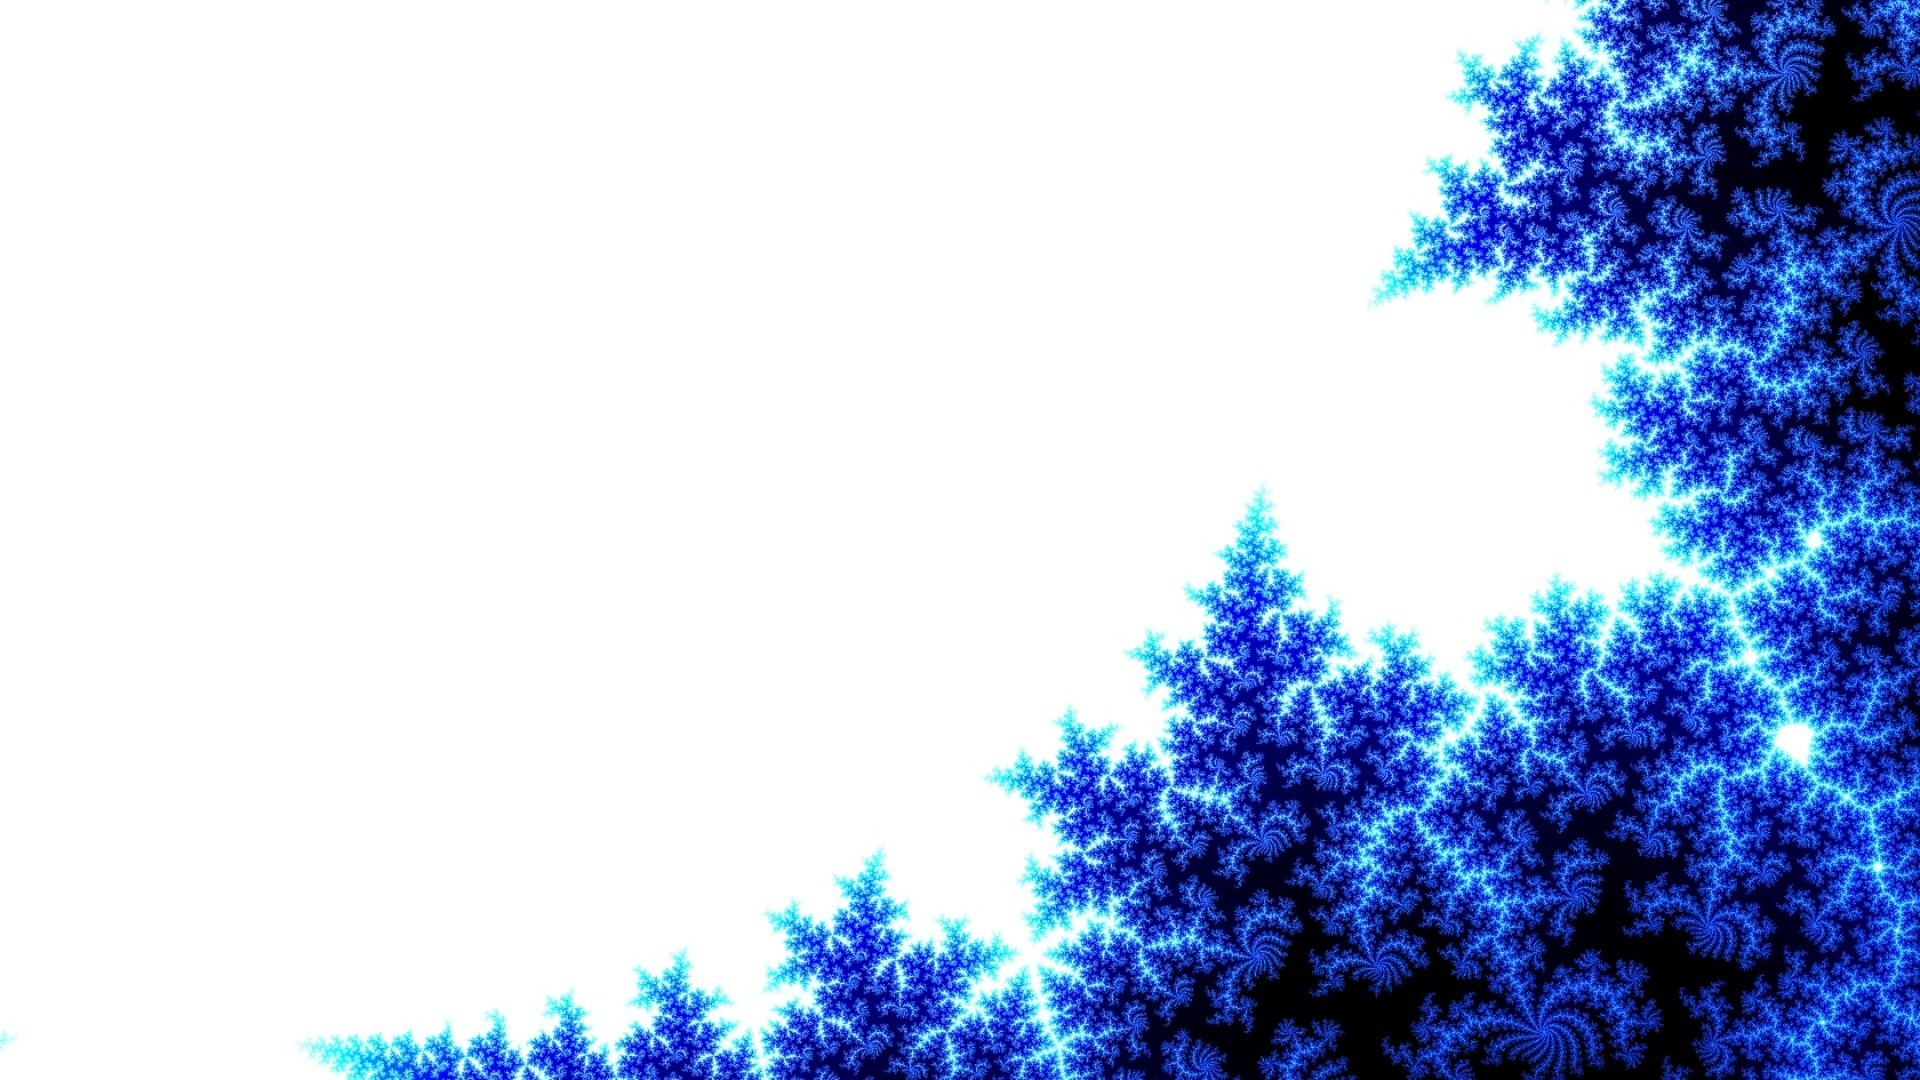 Wallpaper abstract, blue, tree, white